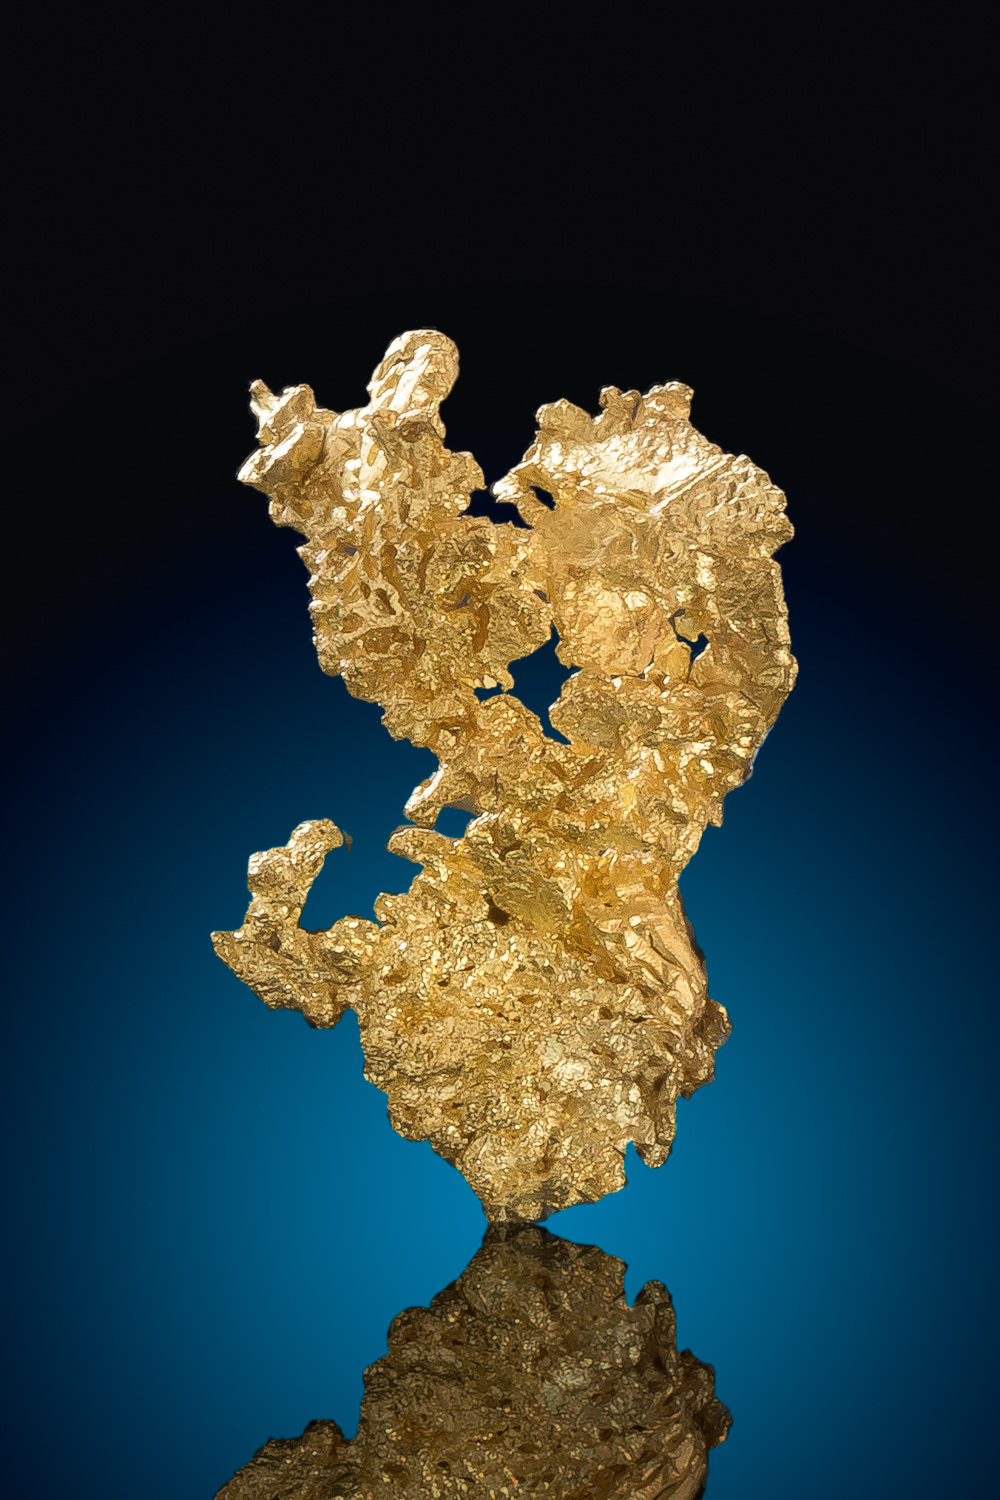 Brilliant Crystalline Gold Nugget from the Eagles Nest Gold Mine